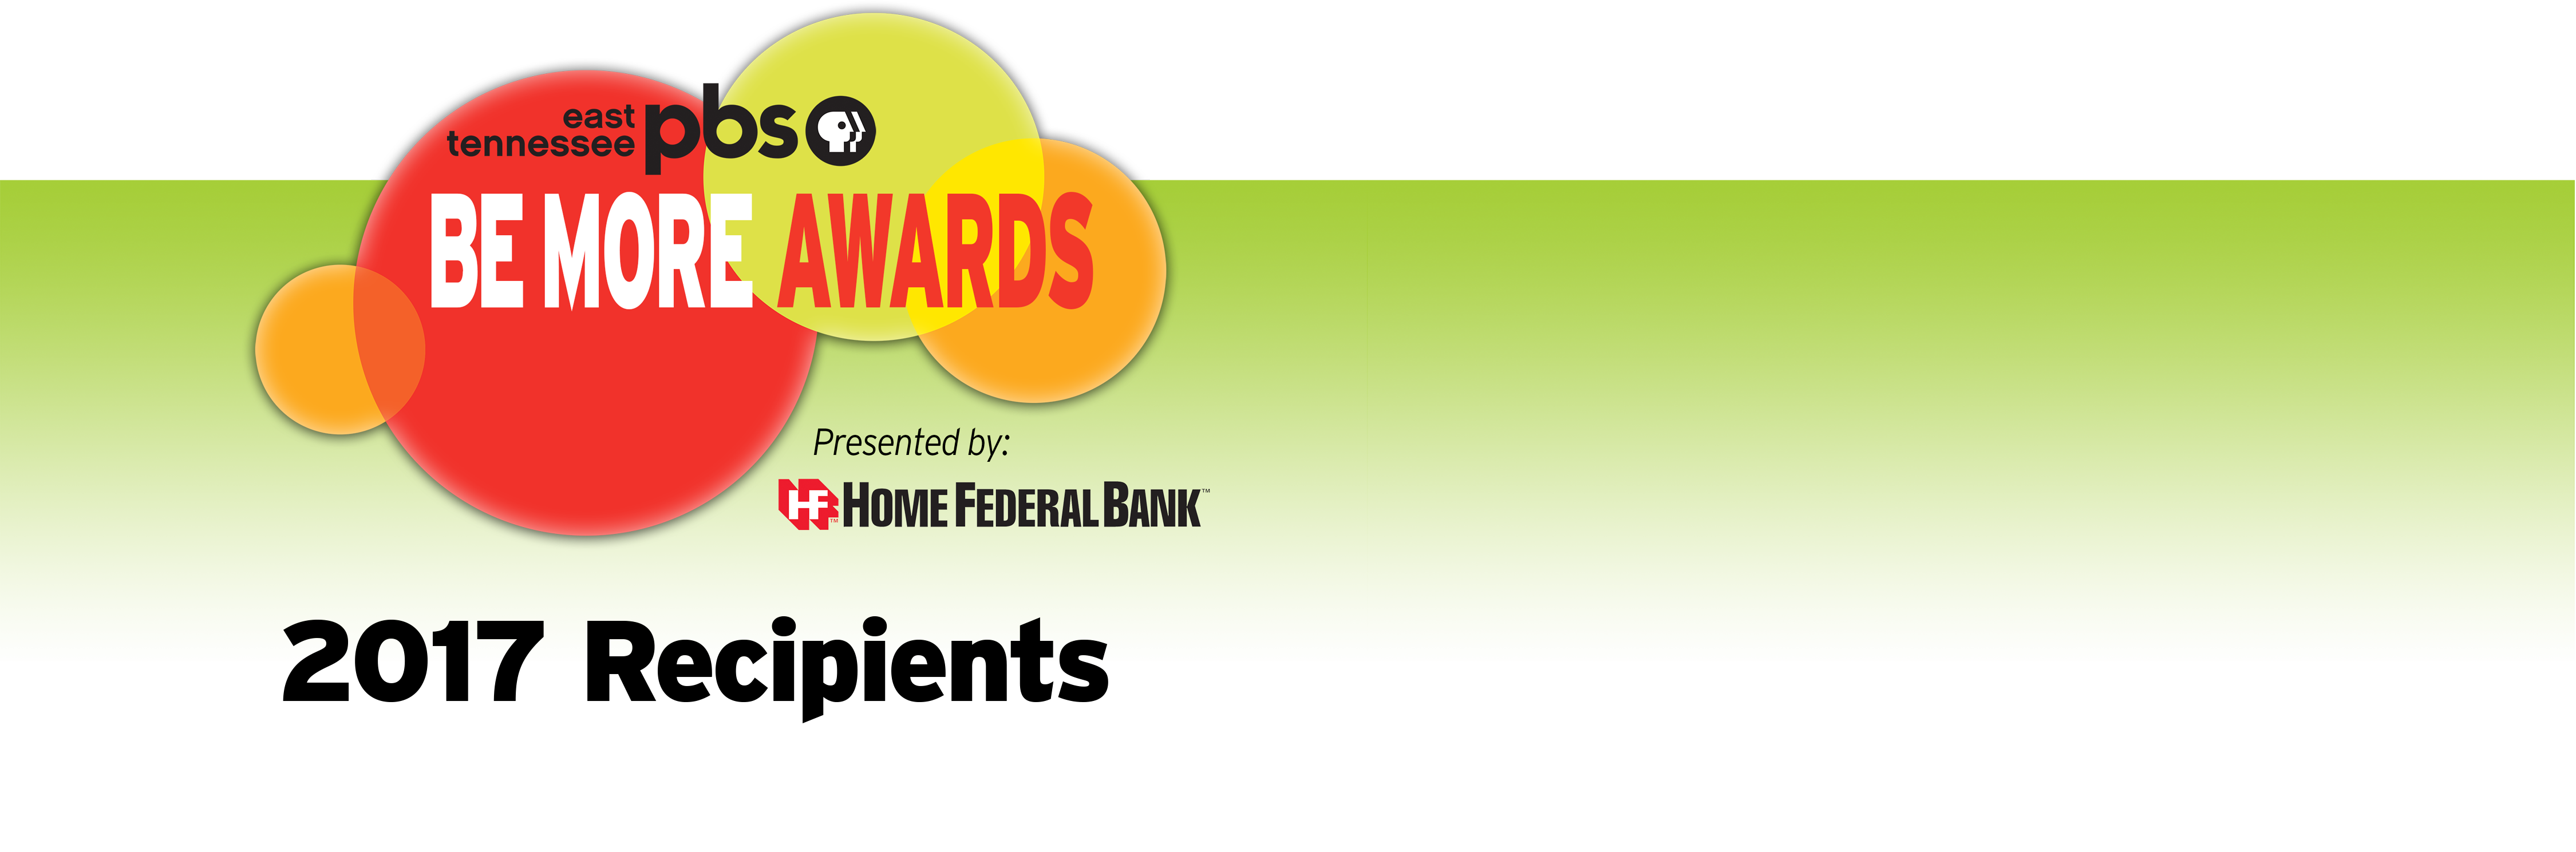 2017 Be More Awards Presented by Home Federal Bank